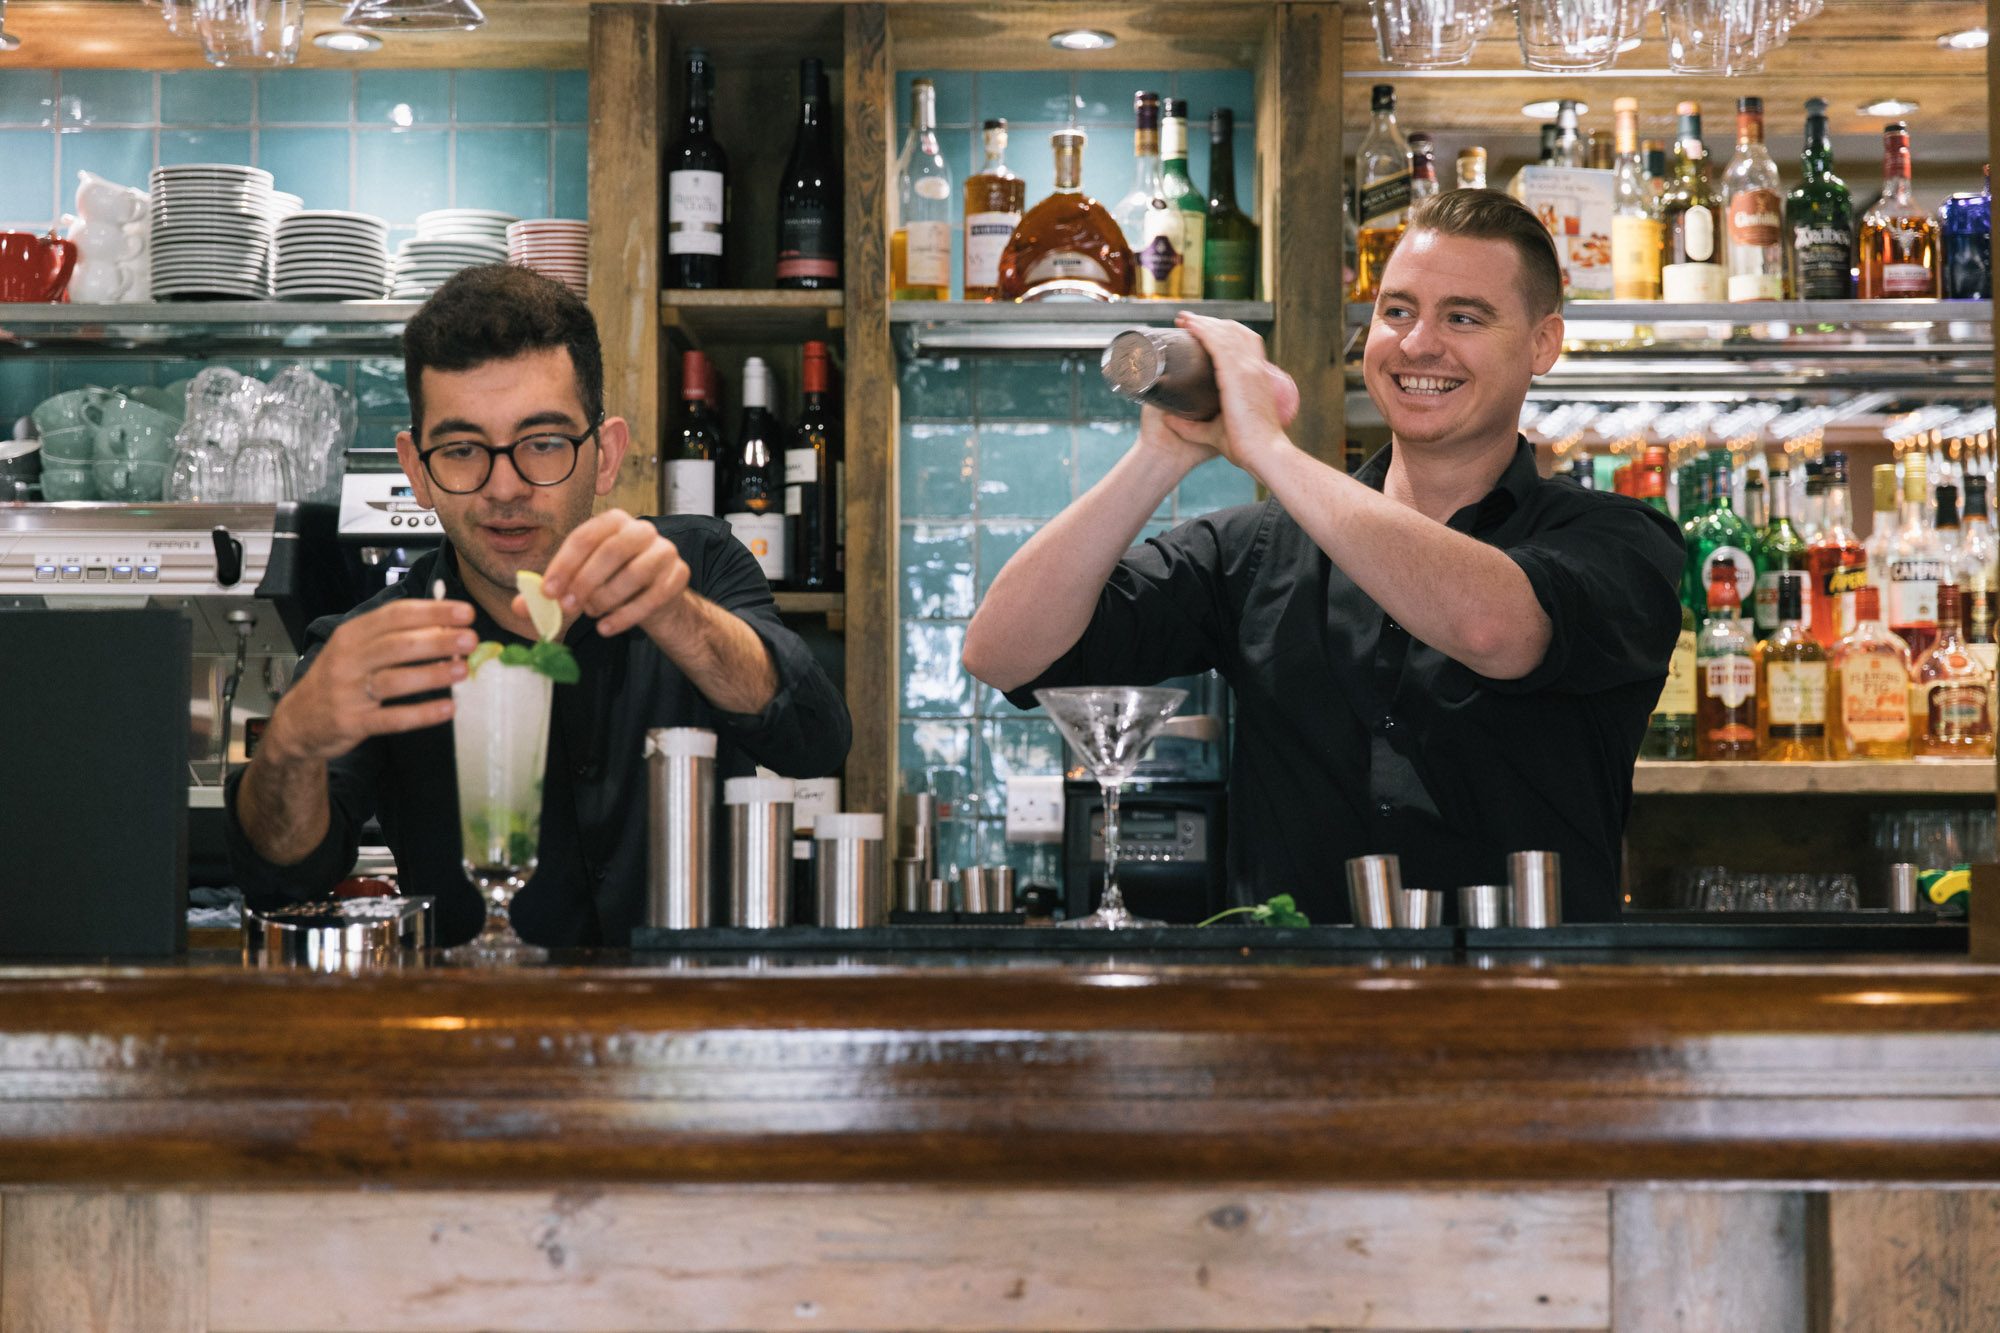 Bar staff career opportunities at The Royal Foresters in Ascot